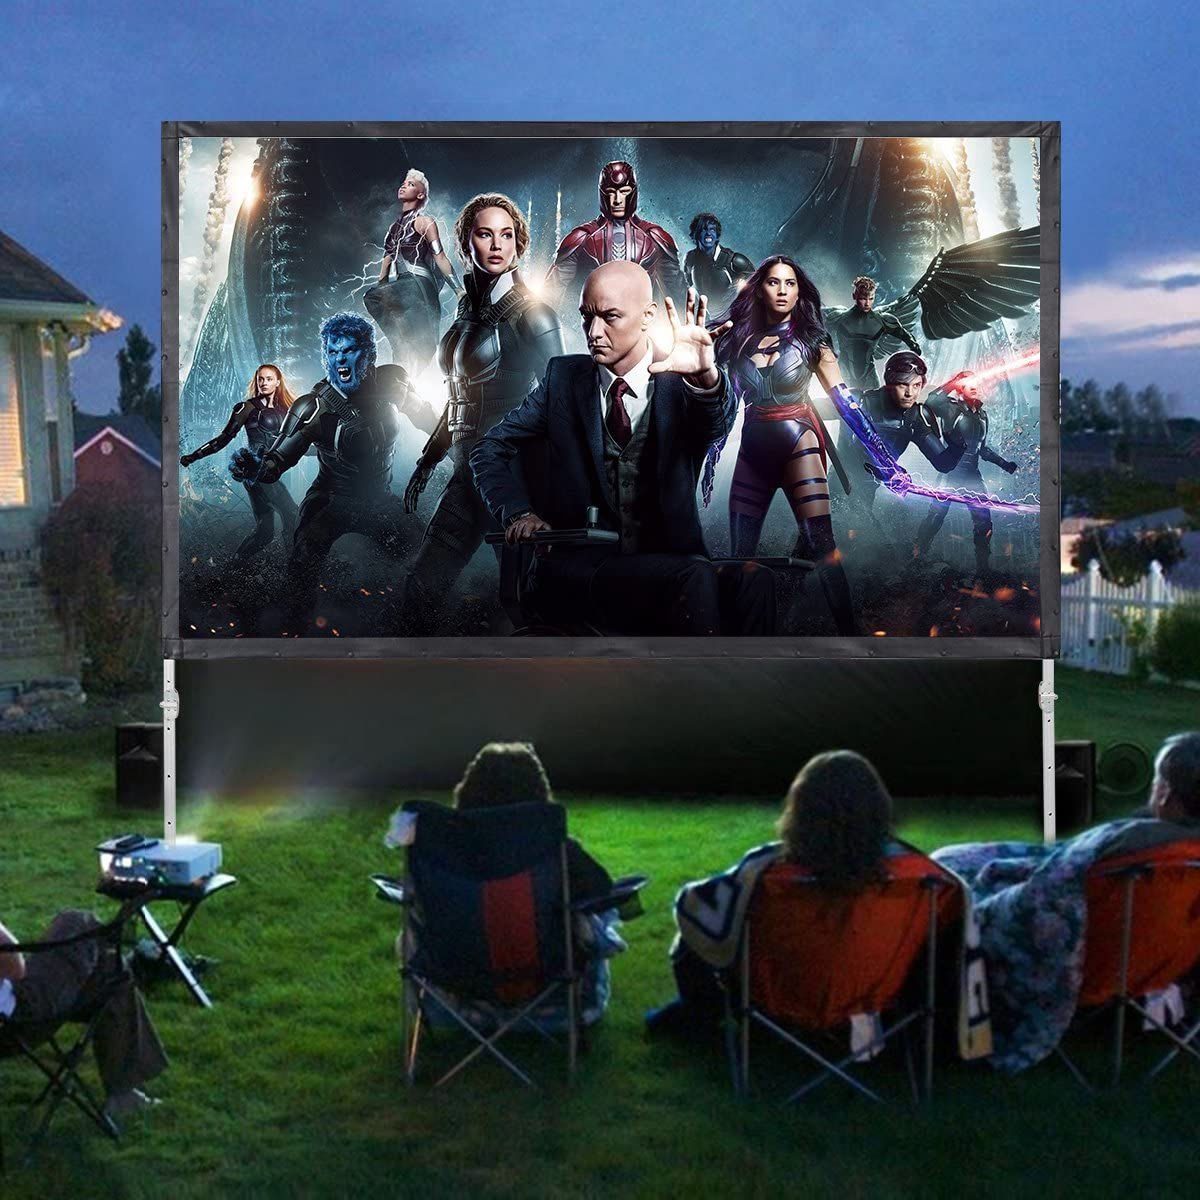 PVC Projector Screen with Stand WASJOYE 4 Layers 100 inch 16:9 HD 4K Outdoor Indoor Portable Rear Front Projection Movie Screen for Home Theater Backyard Movie with Carrying Bag